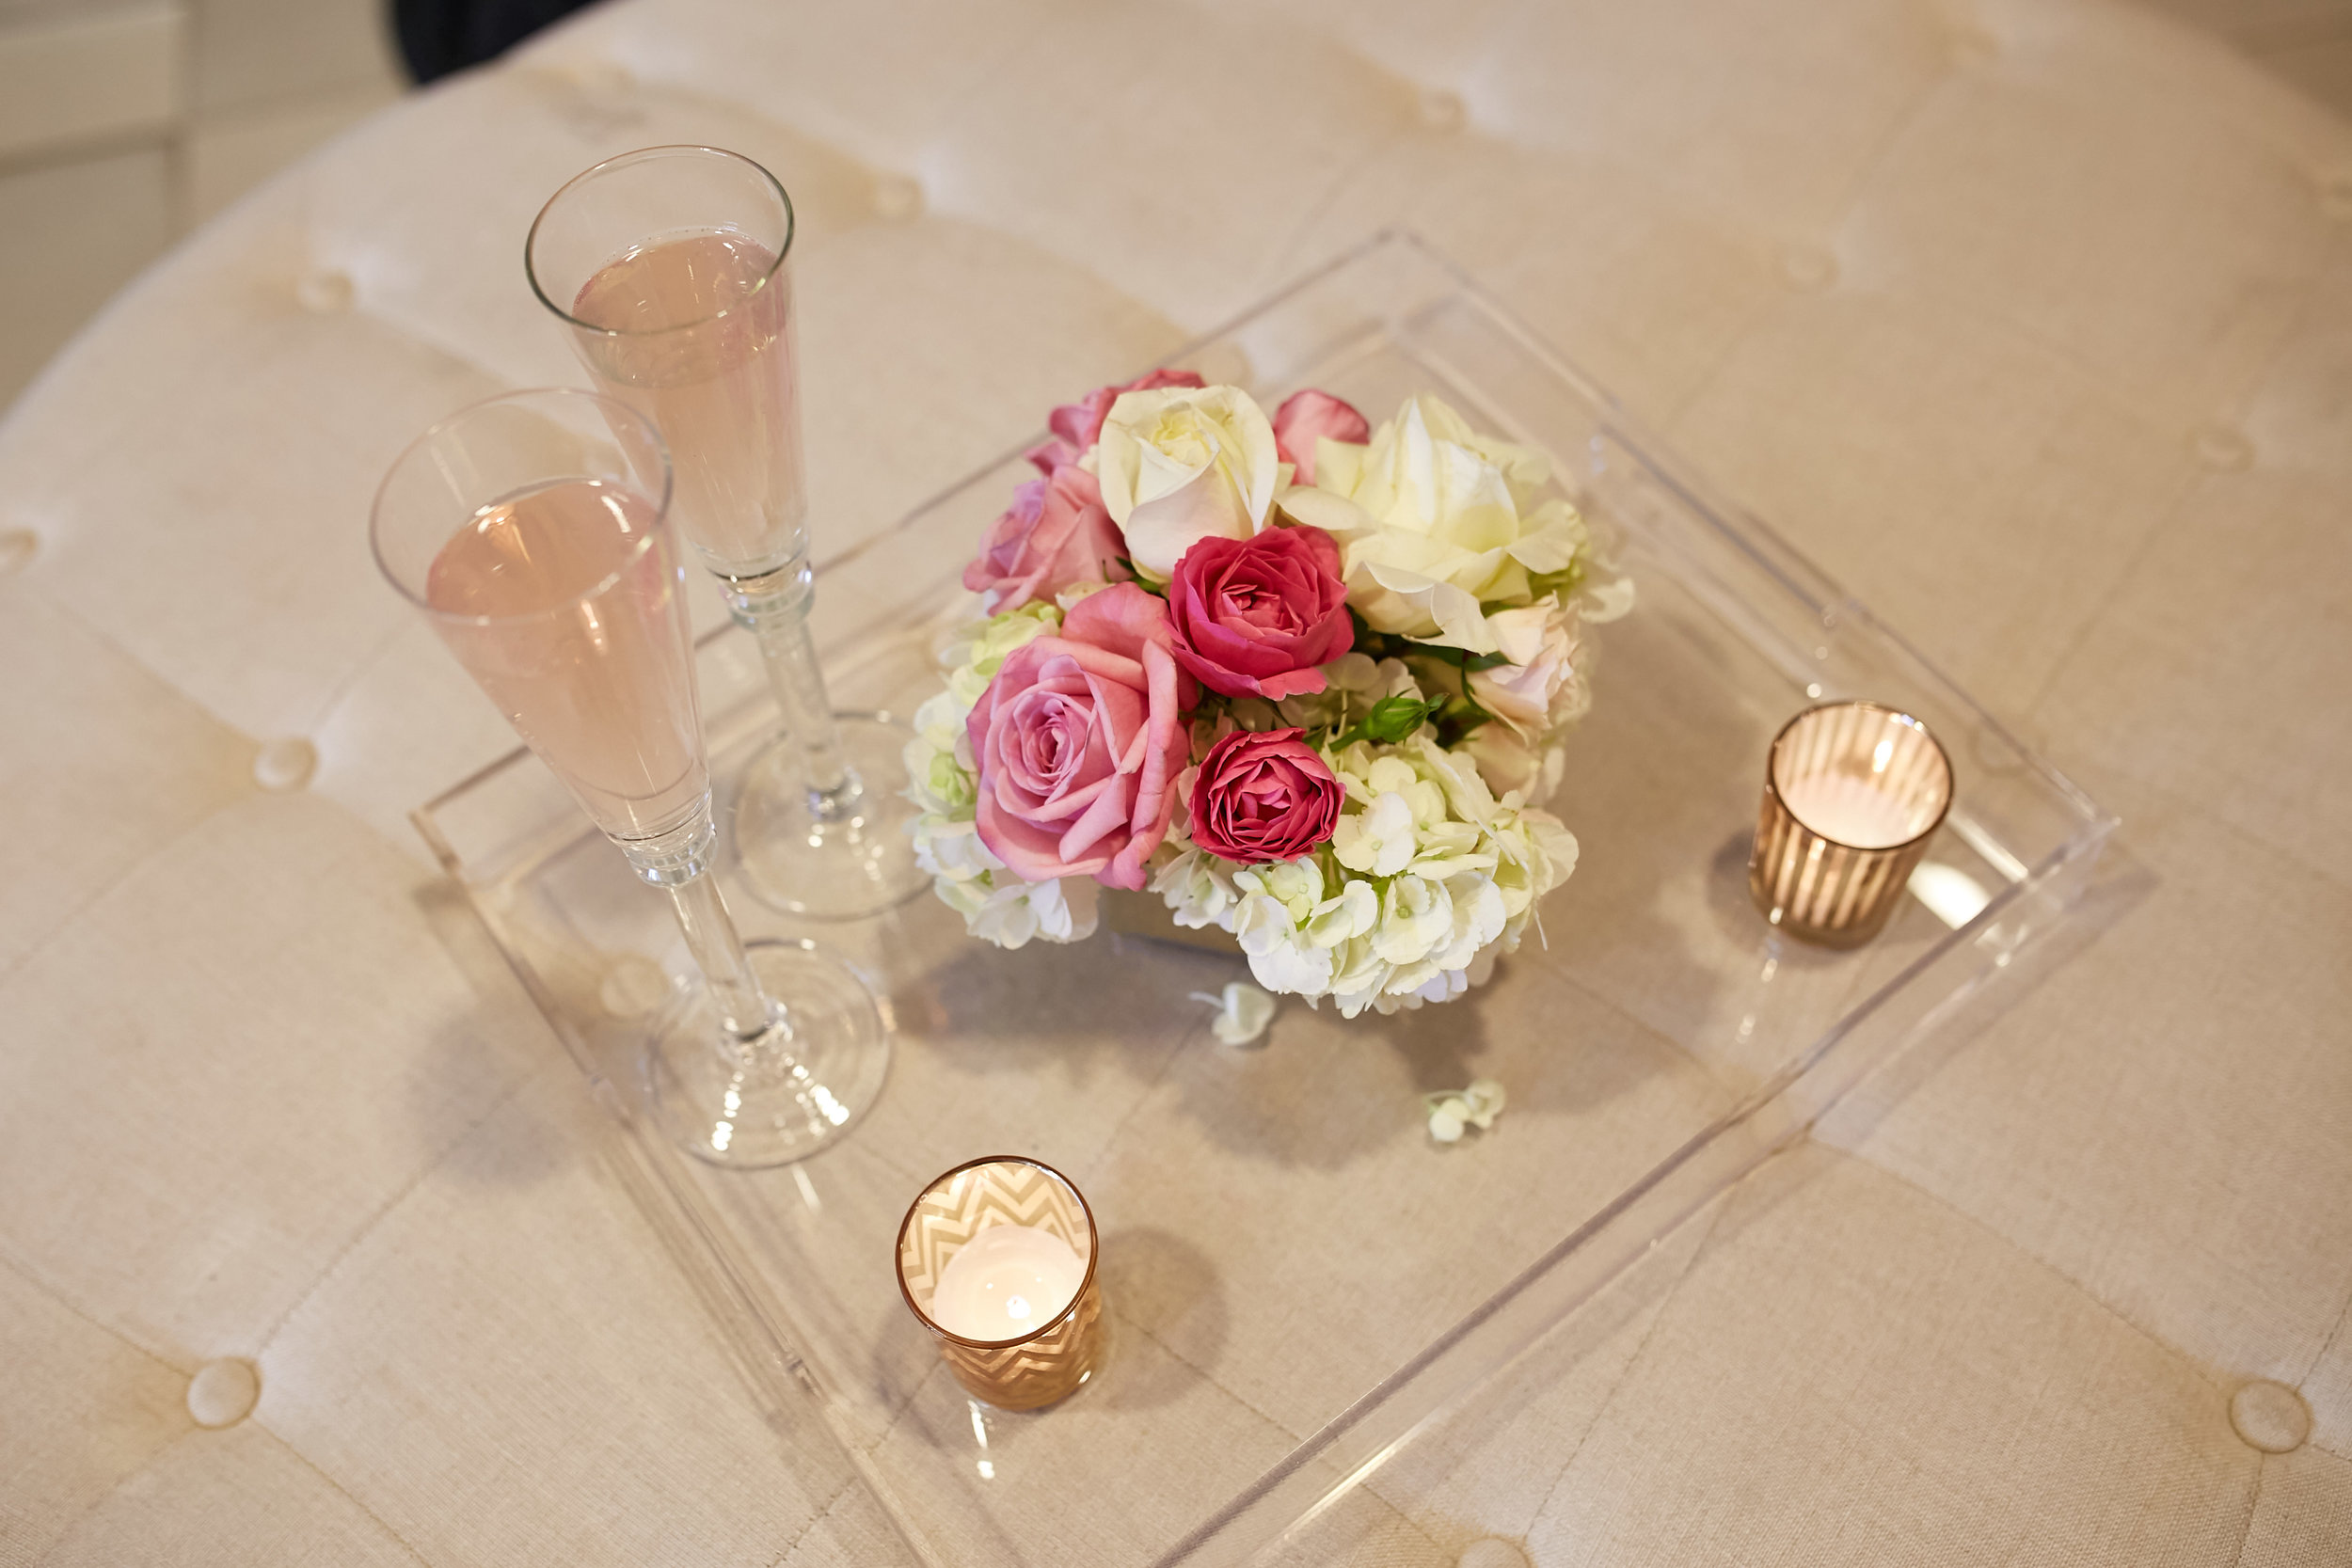 Cheri Denise Events - Luxury Event Planner and Floral Designer